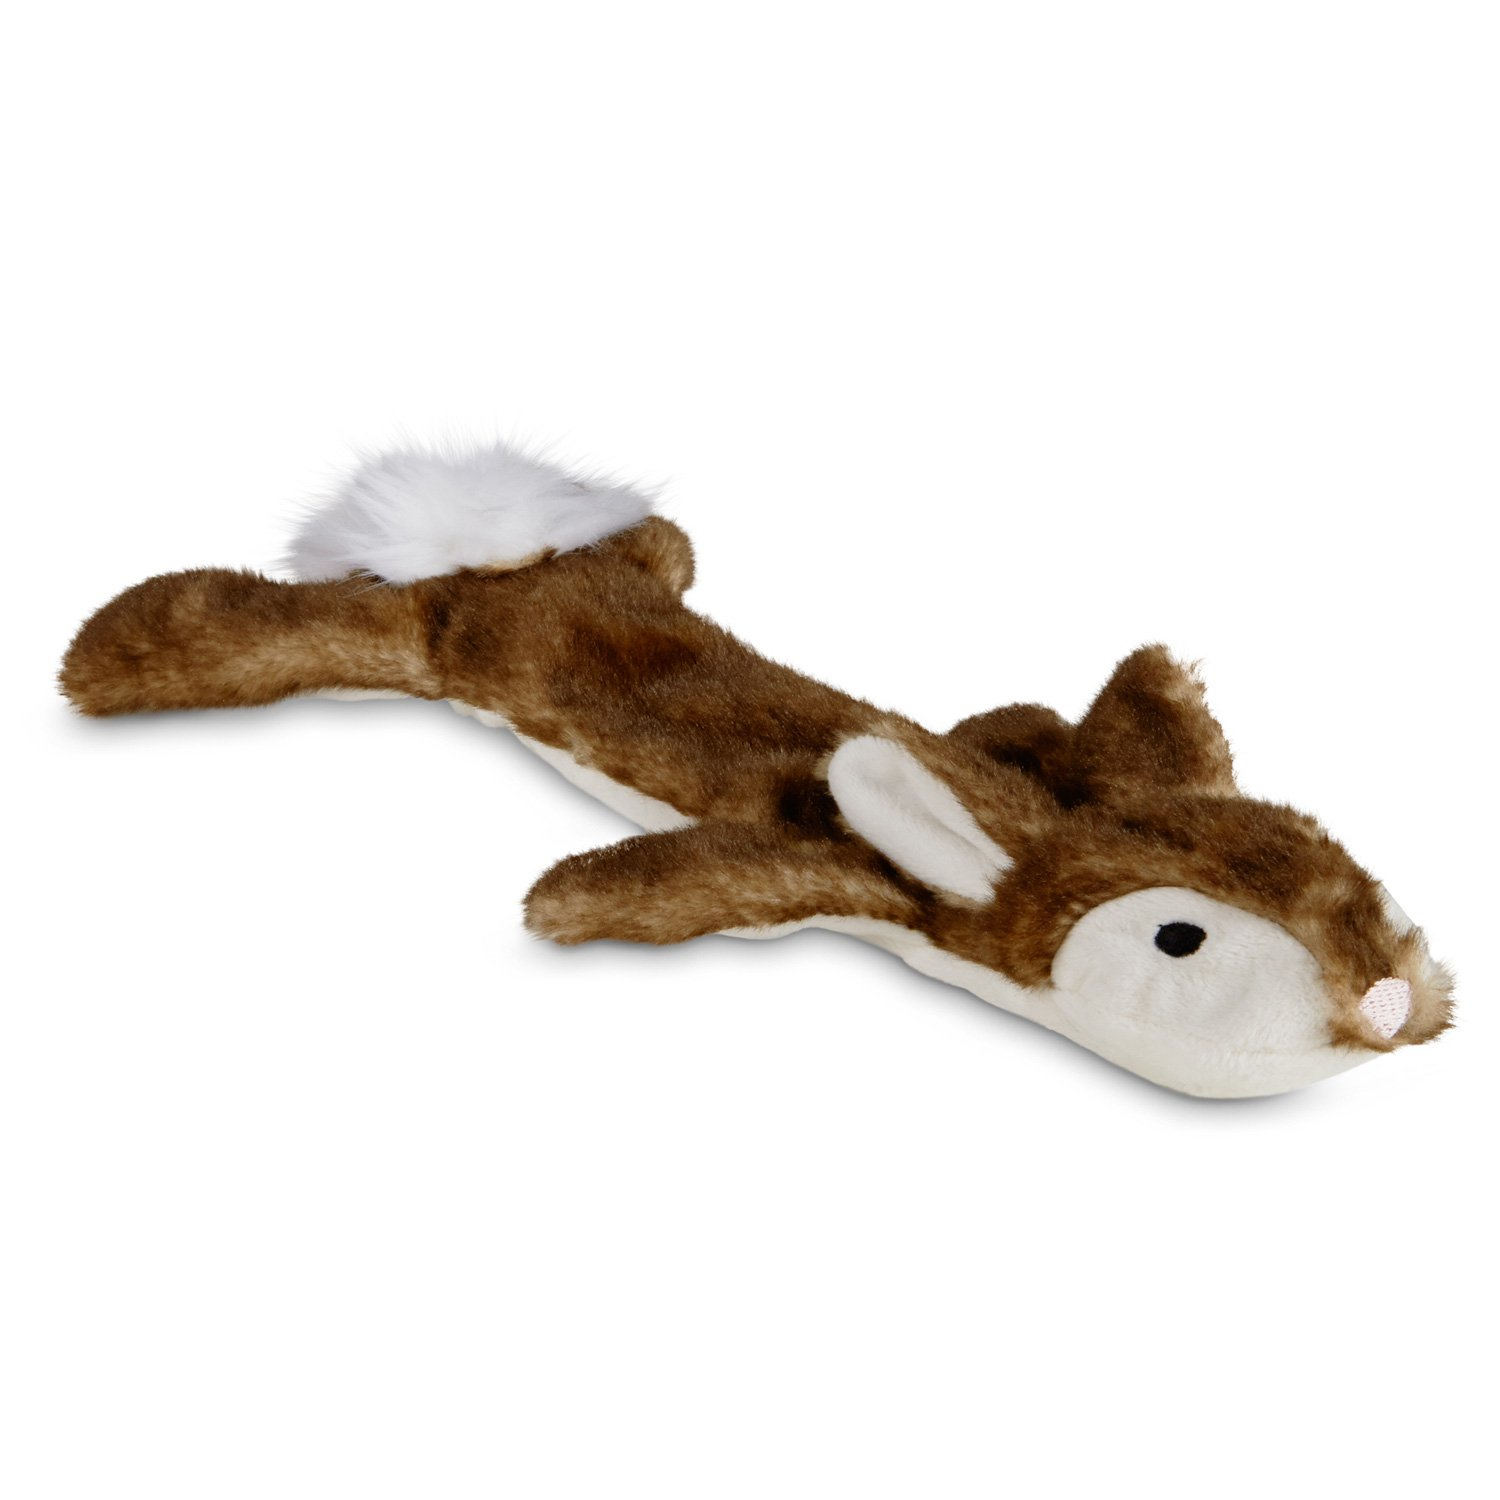 Leaps & Bounds Unstuffed Rabbit Dog Toy | Petco | Dog Toys Without Stuffing